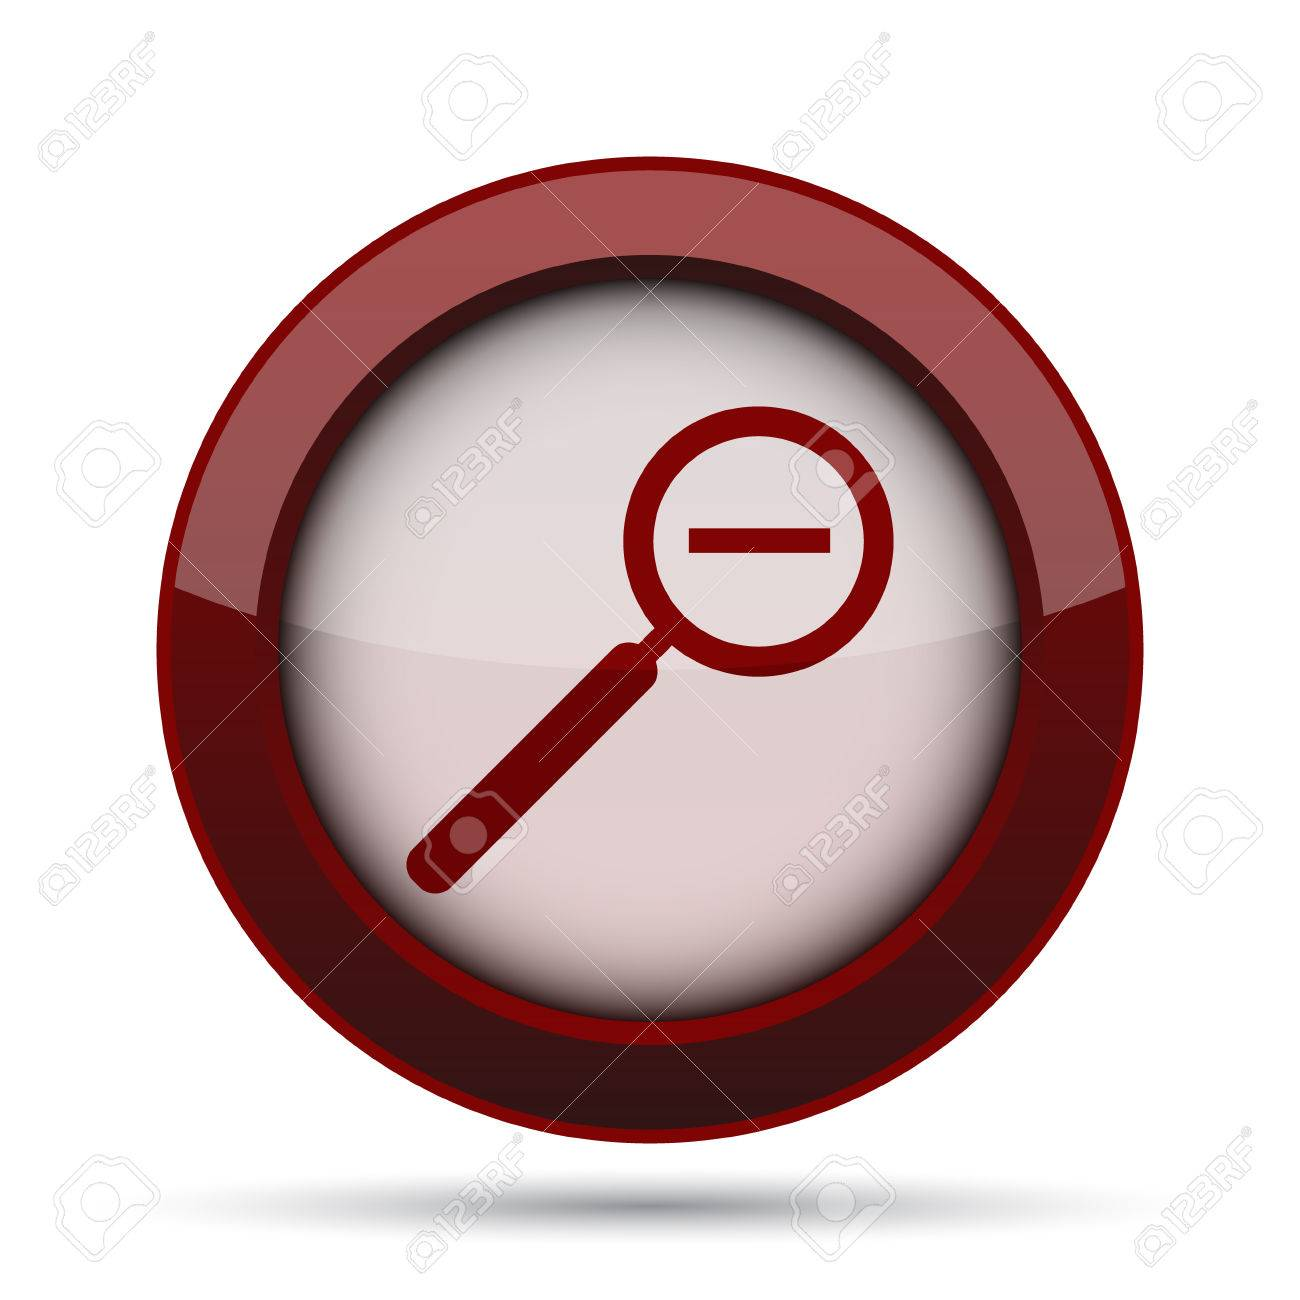 Background image zoom out - Stock Photo Zoom Out Icon Internet Button On White Background